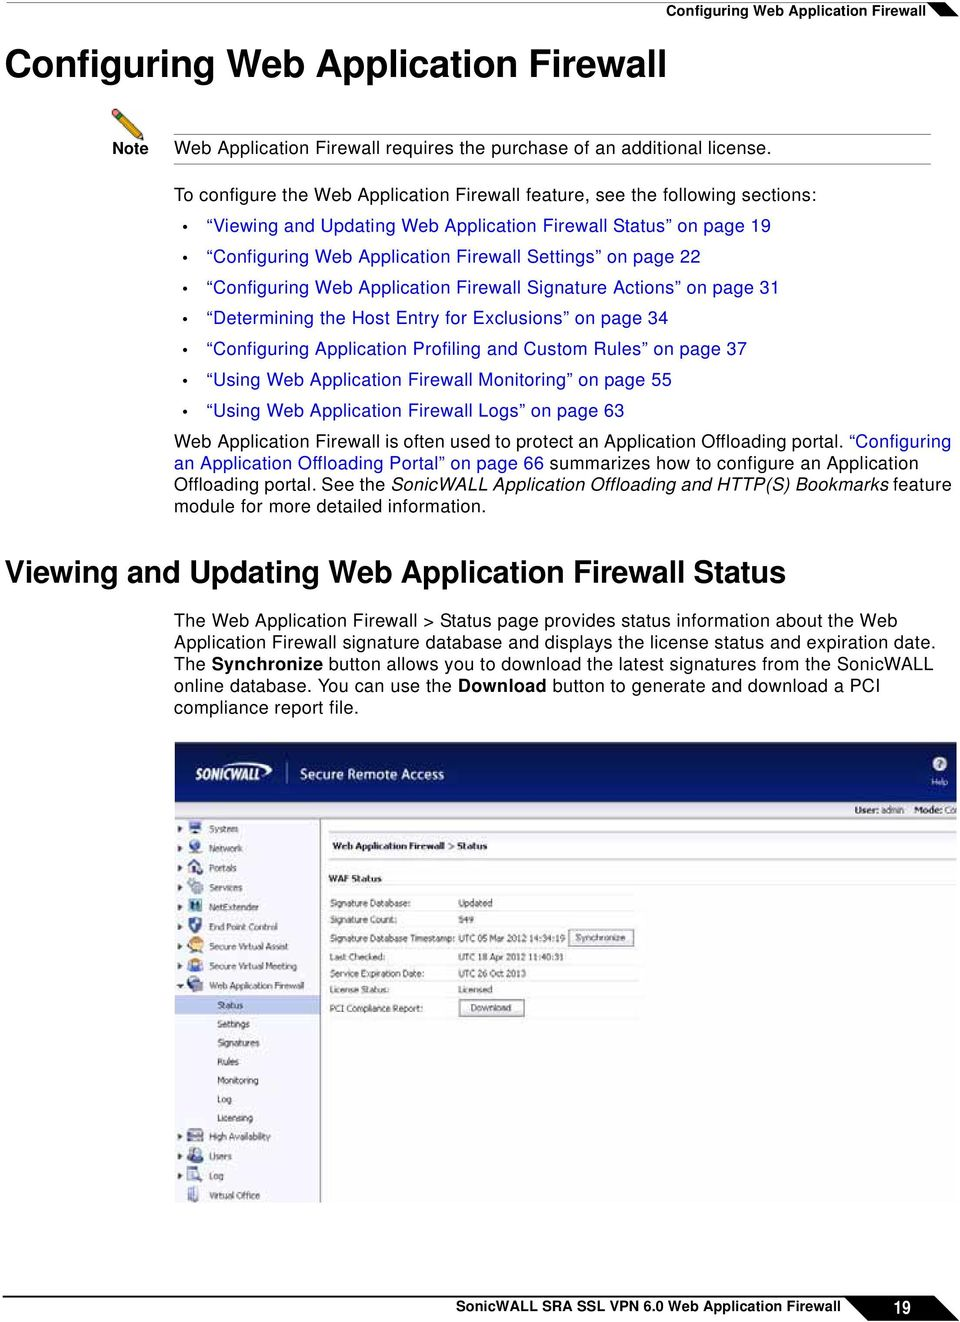 Configuring Web Application Firewall Signature Actions on page 31 Determining the Host Entry for Exclusions on page 34 Configuring Application Profiling and Custom Rules on page 37 Using Web